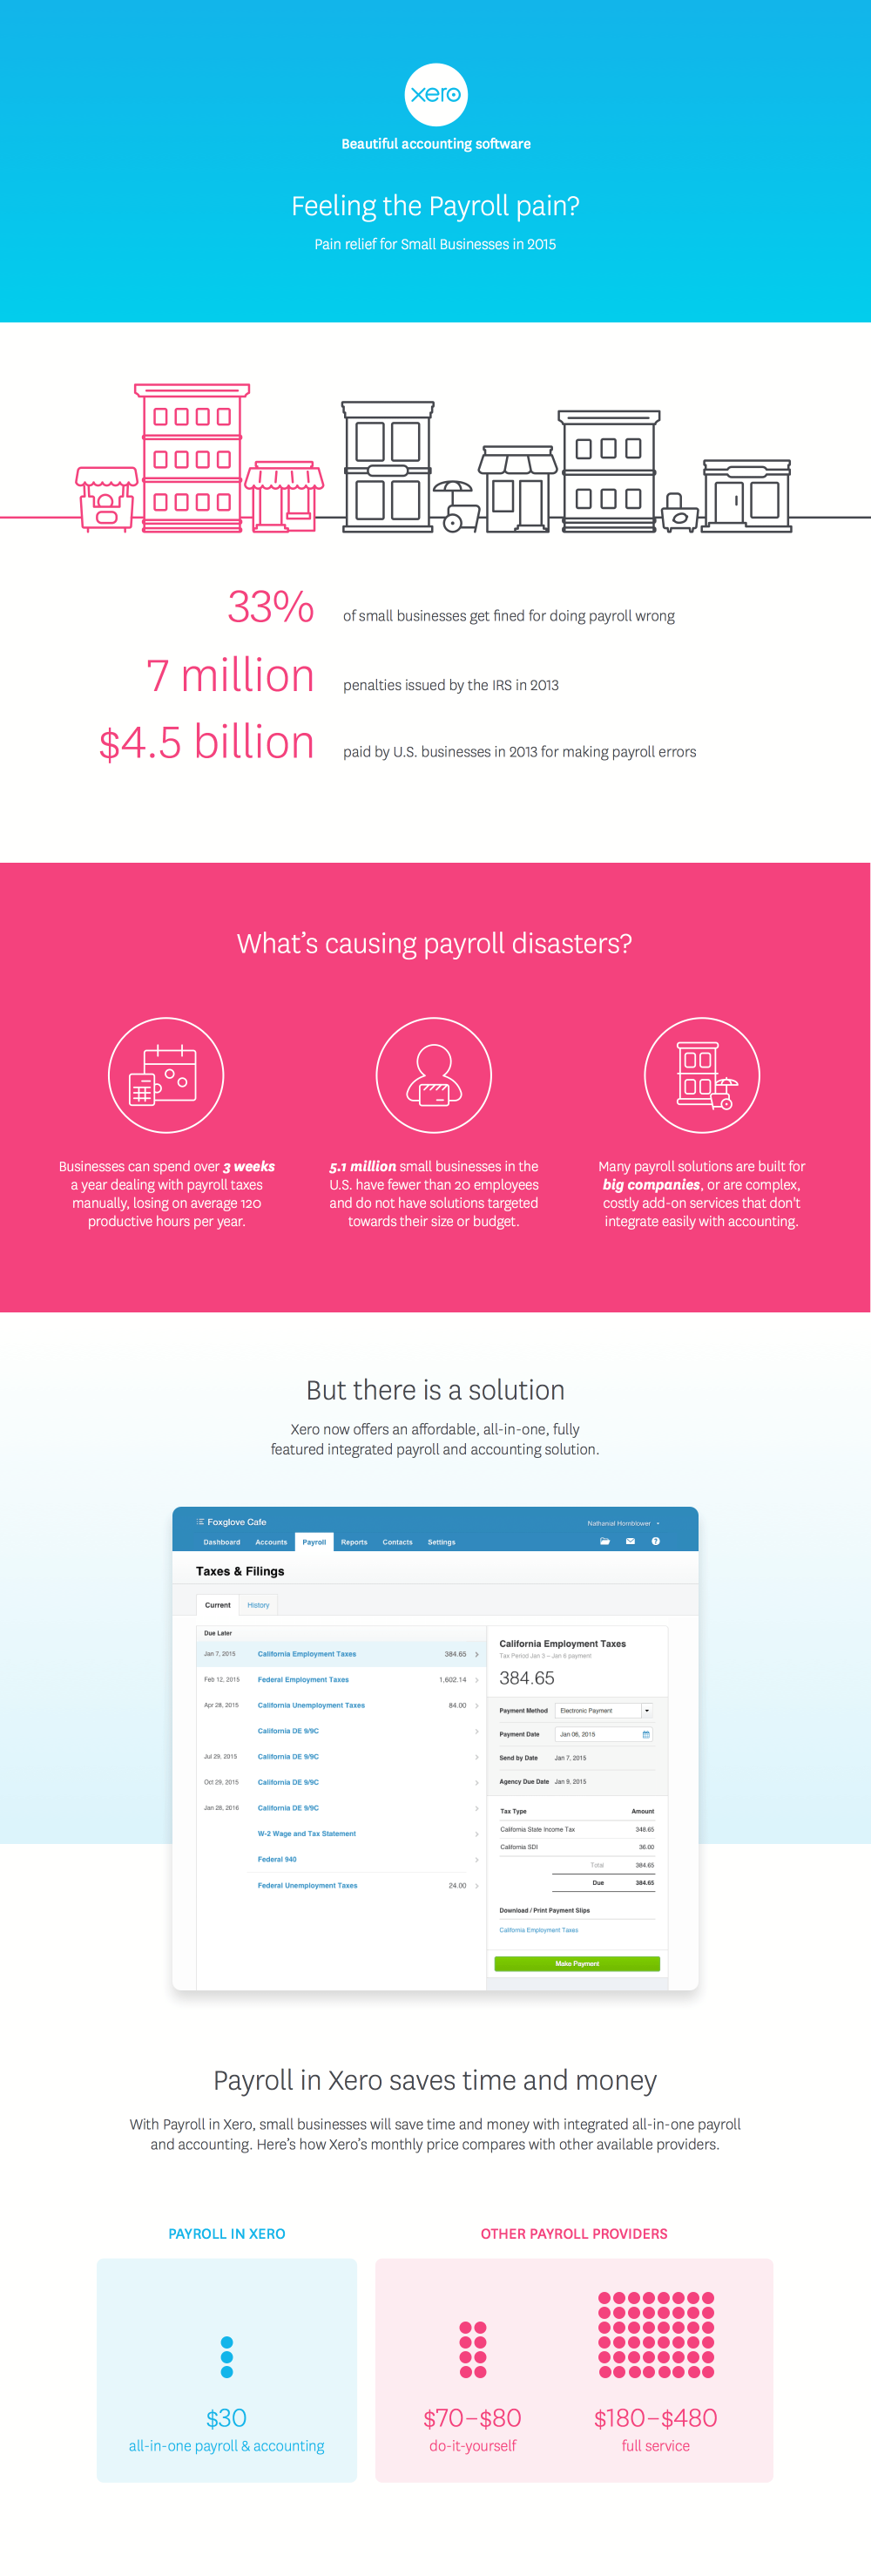 The pain of payroll for us small businesses infographic xero us beautiful business solutioingenieria Image collections